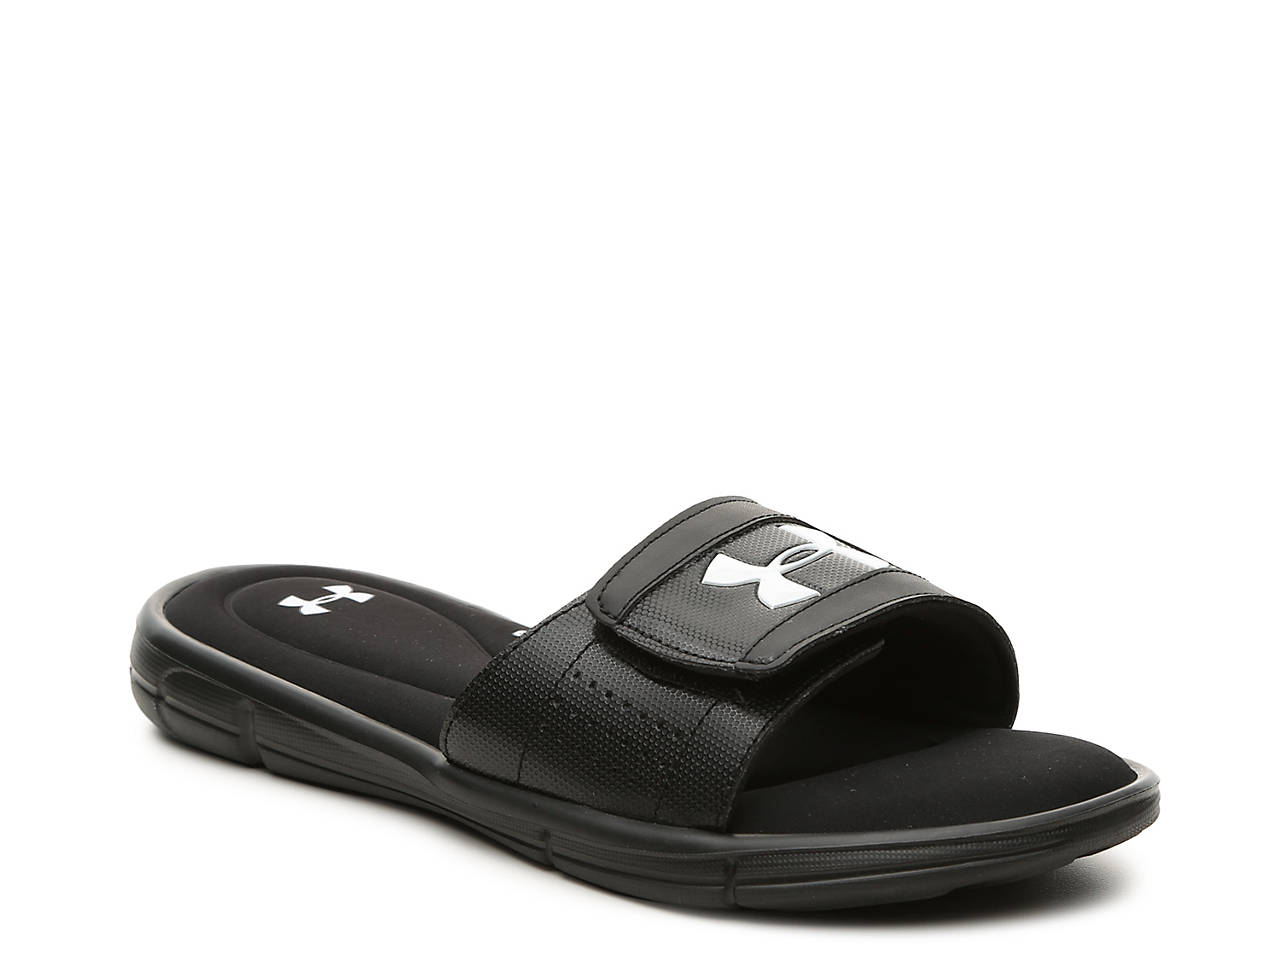 4a79268f1 Under Armour Ignite V Slide Sandal - Men's Men's Shoes | DSW